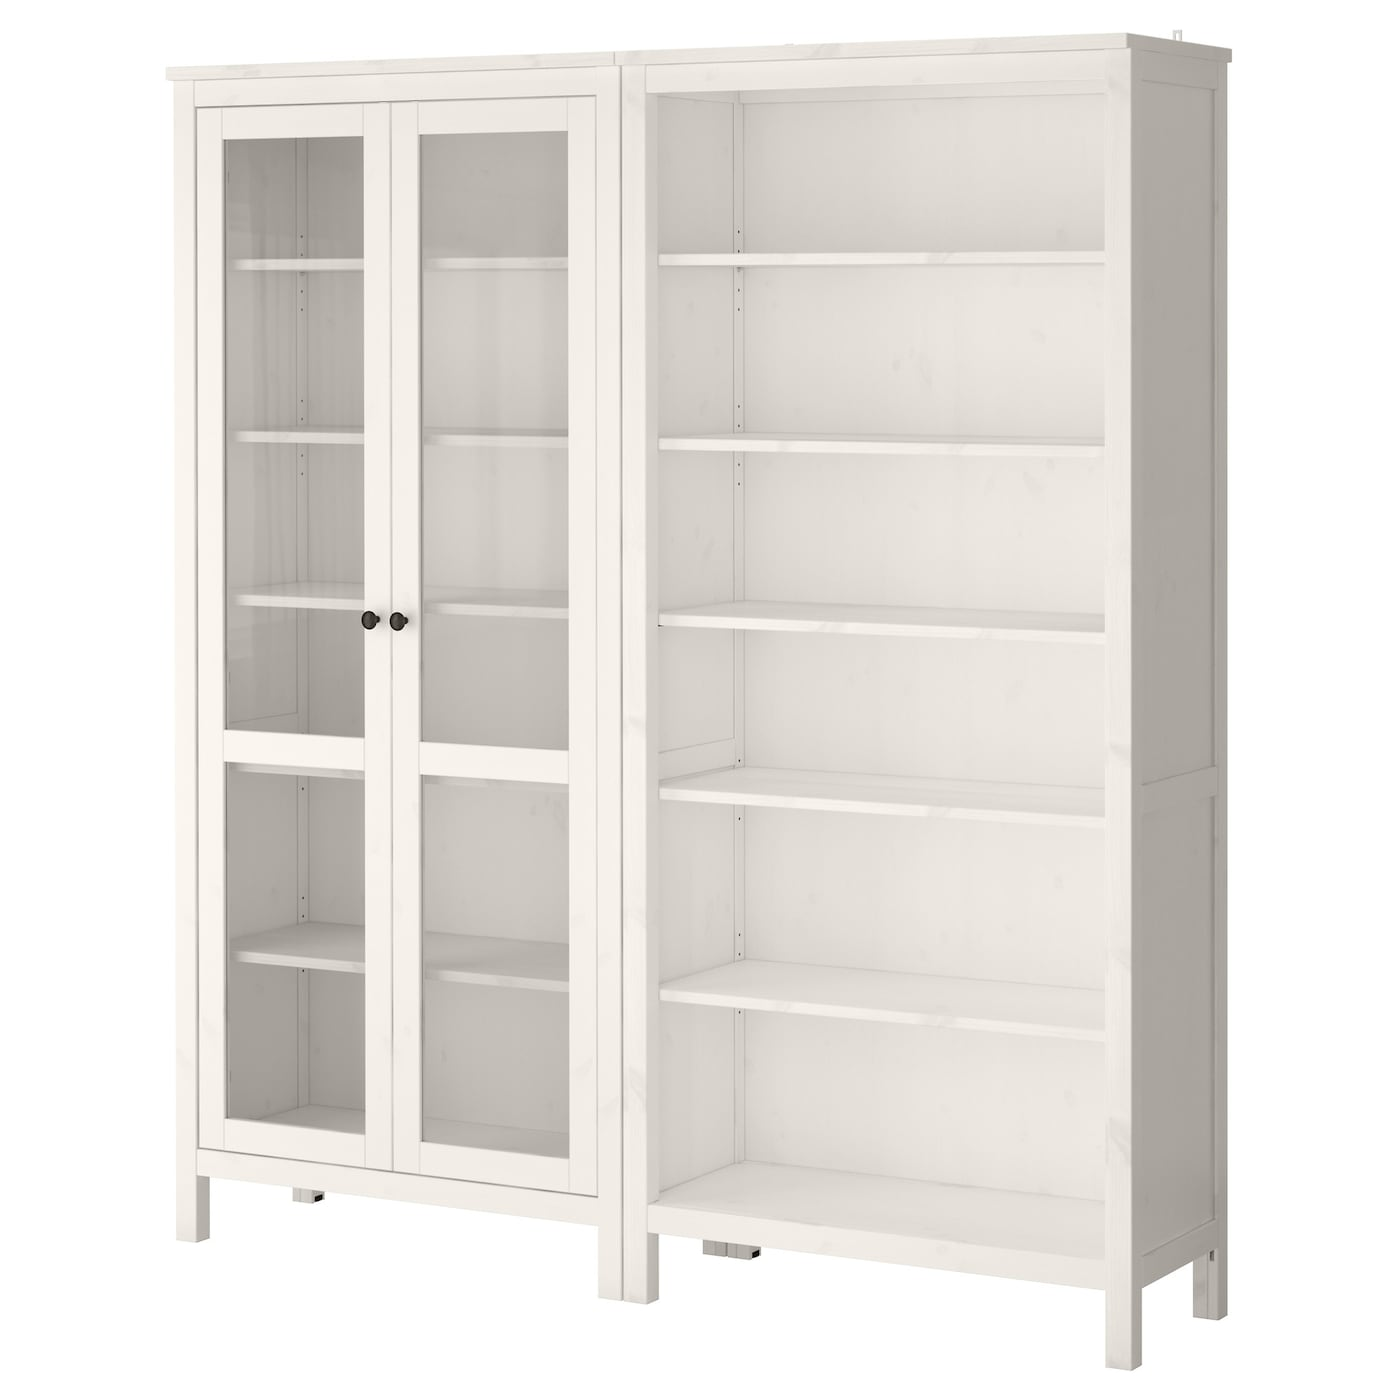 bookcases adapt furniture according adjustable ikea bookshelf storage to between billy shelves bookcase en products gb needs oxberg small your white glass space